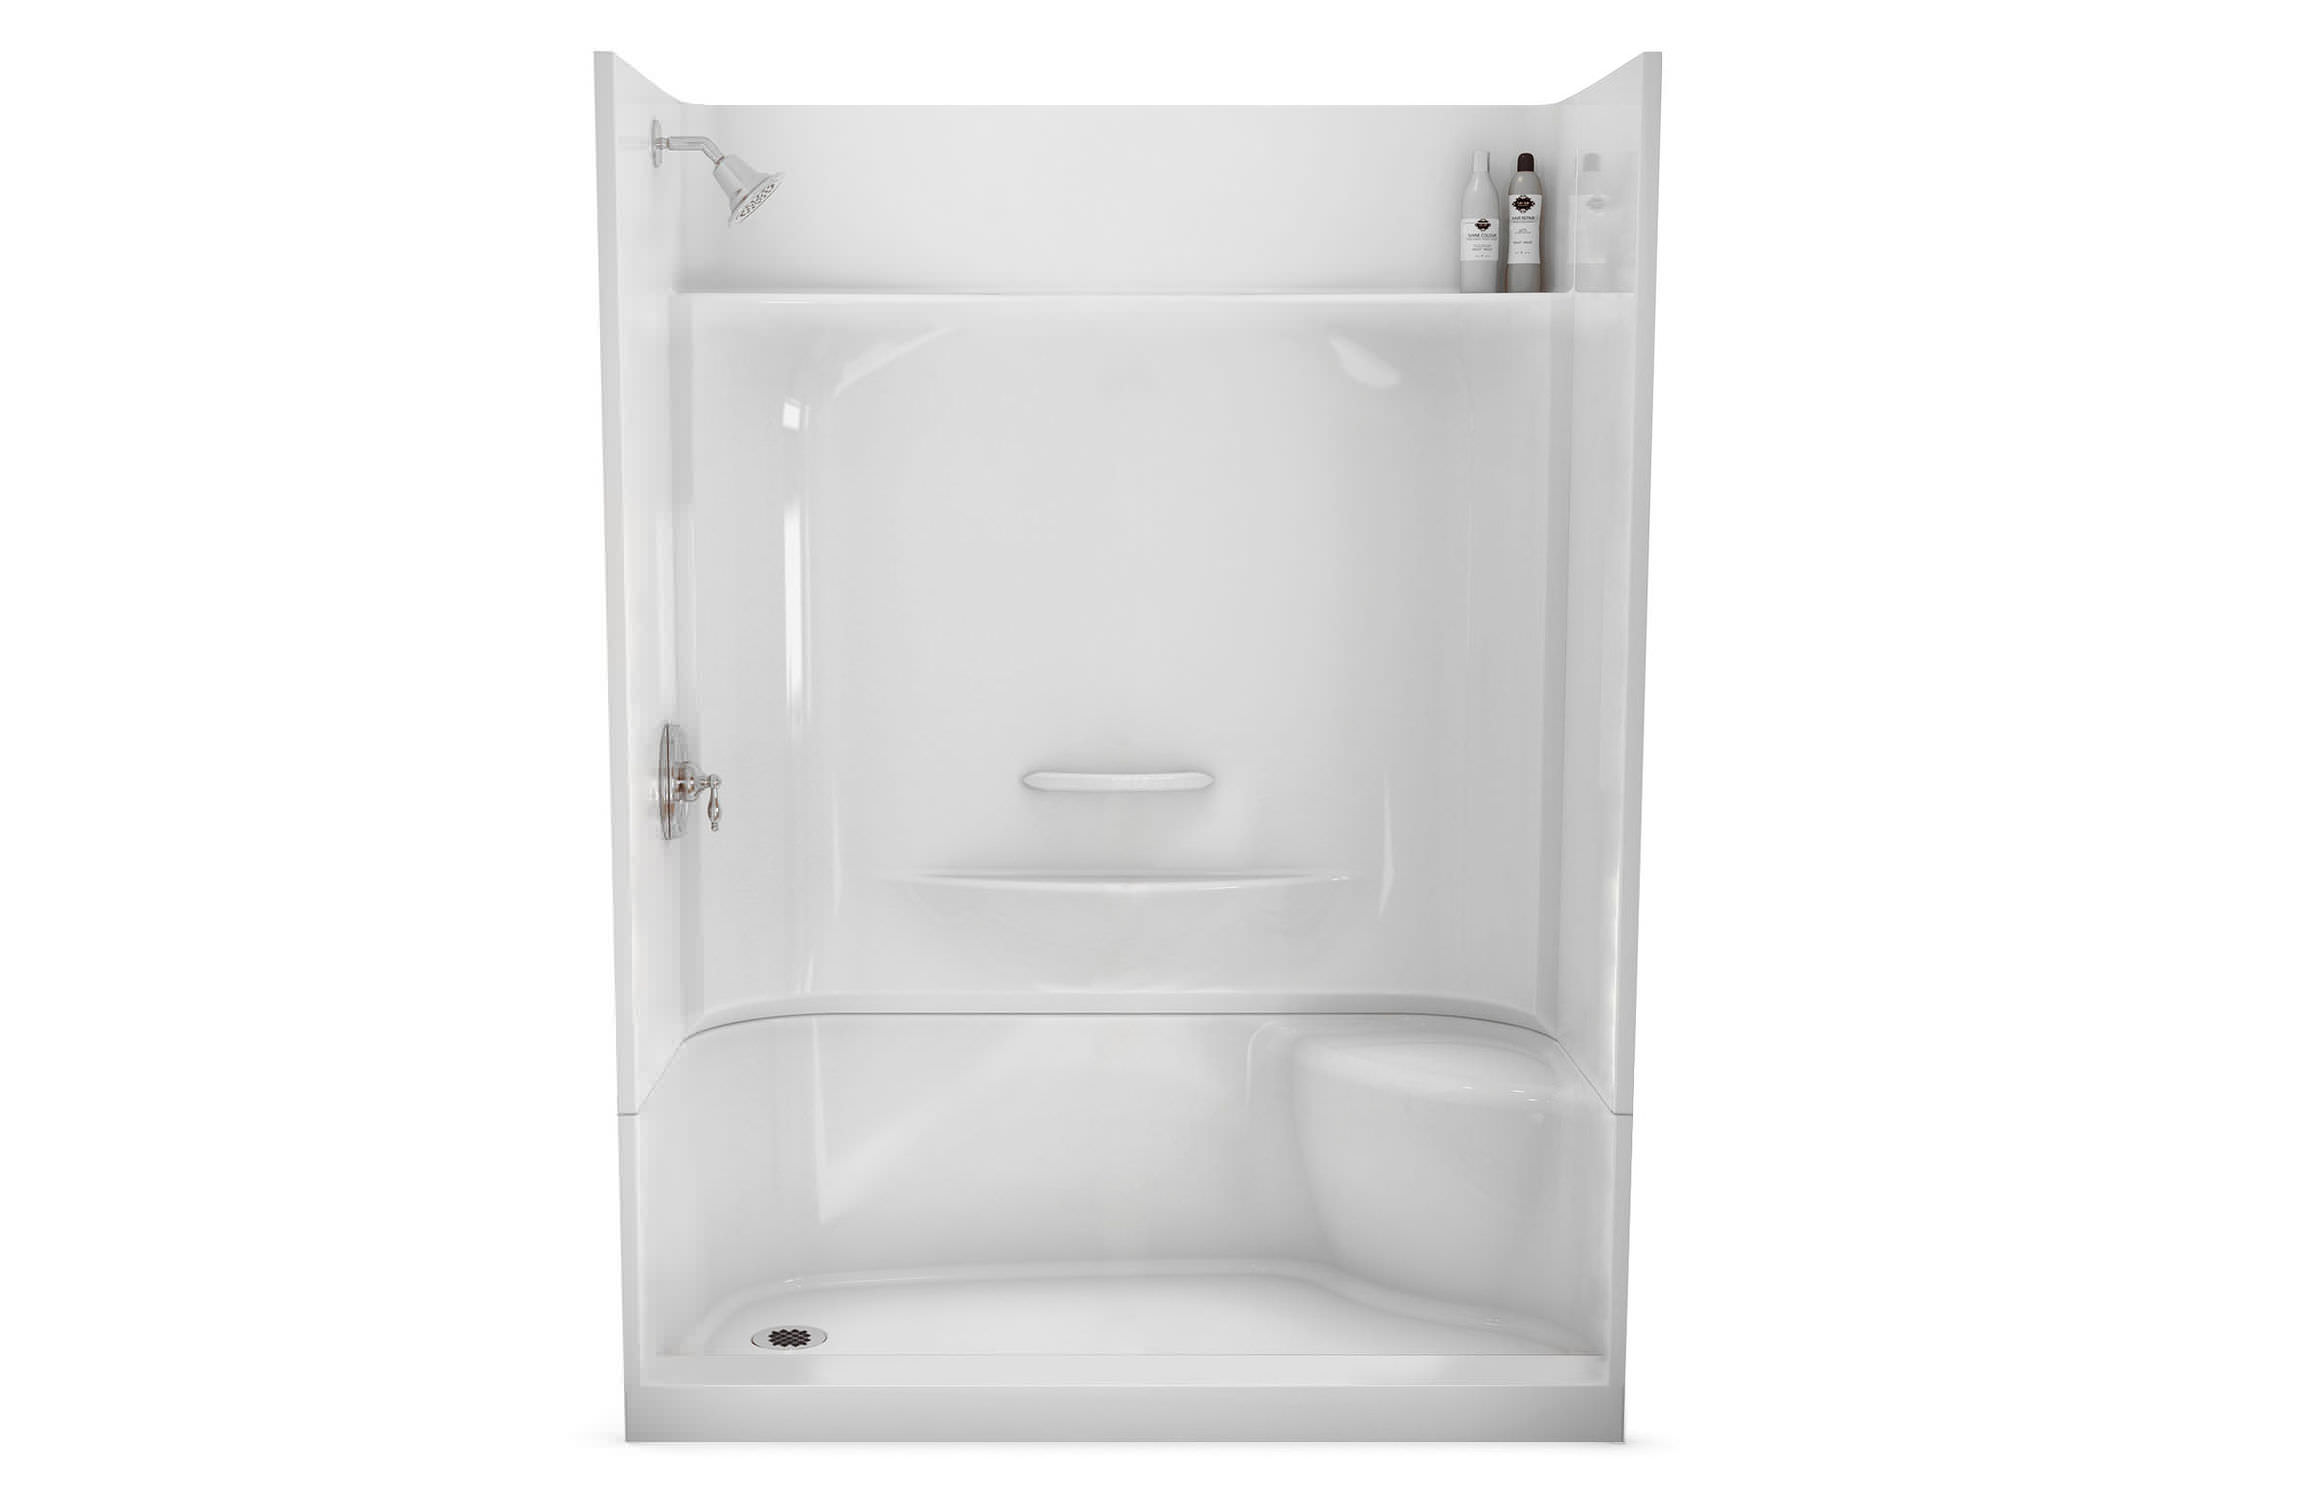 Rectangular shower base / acrylic - KDS 3060 - MAAX bathroom